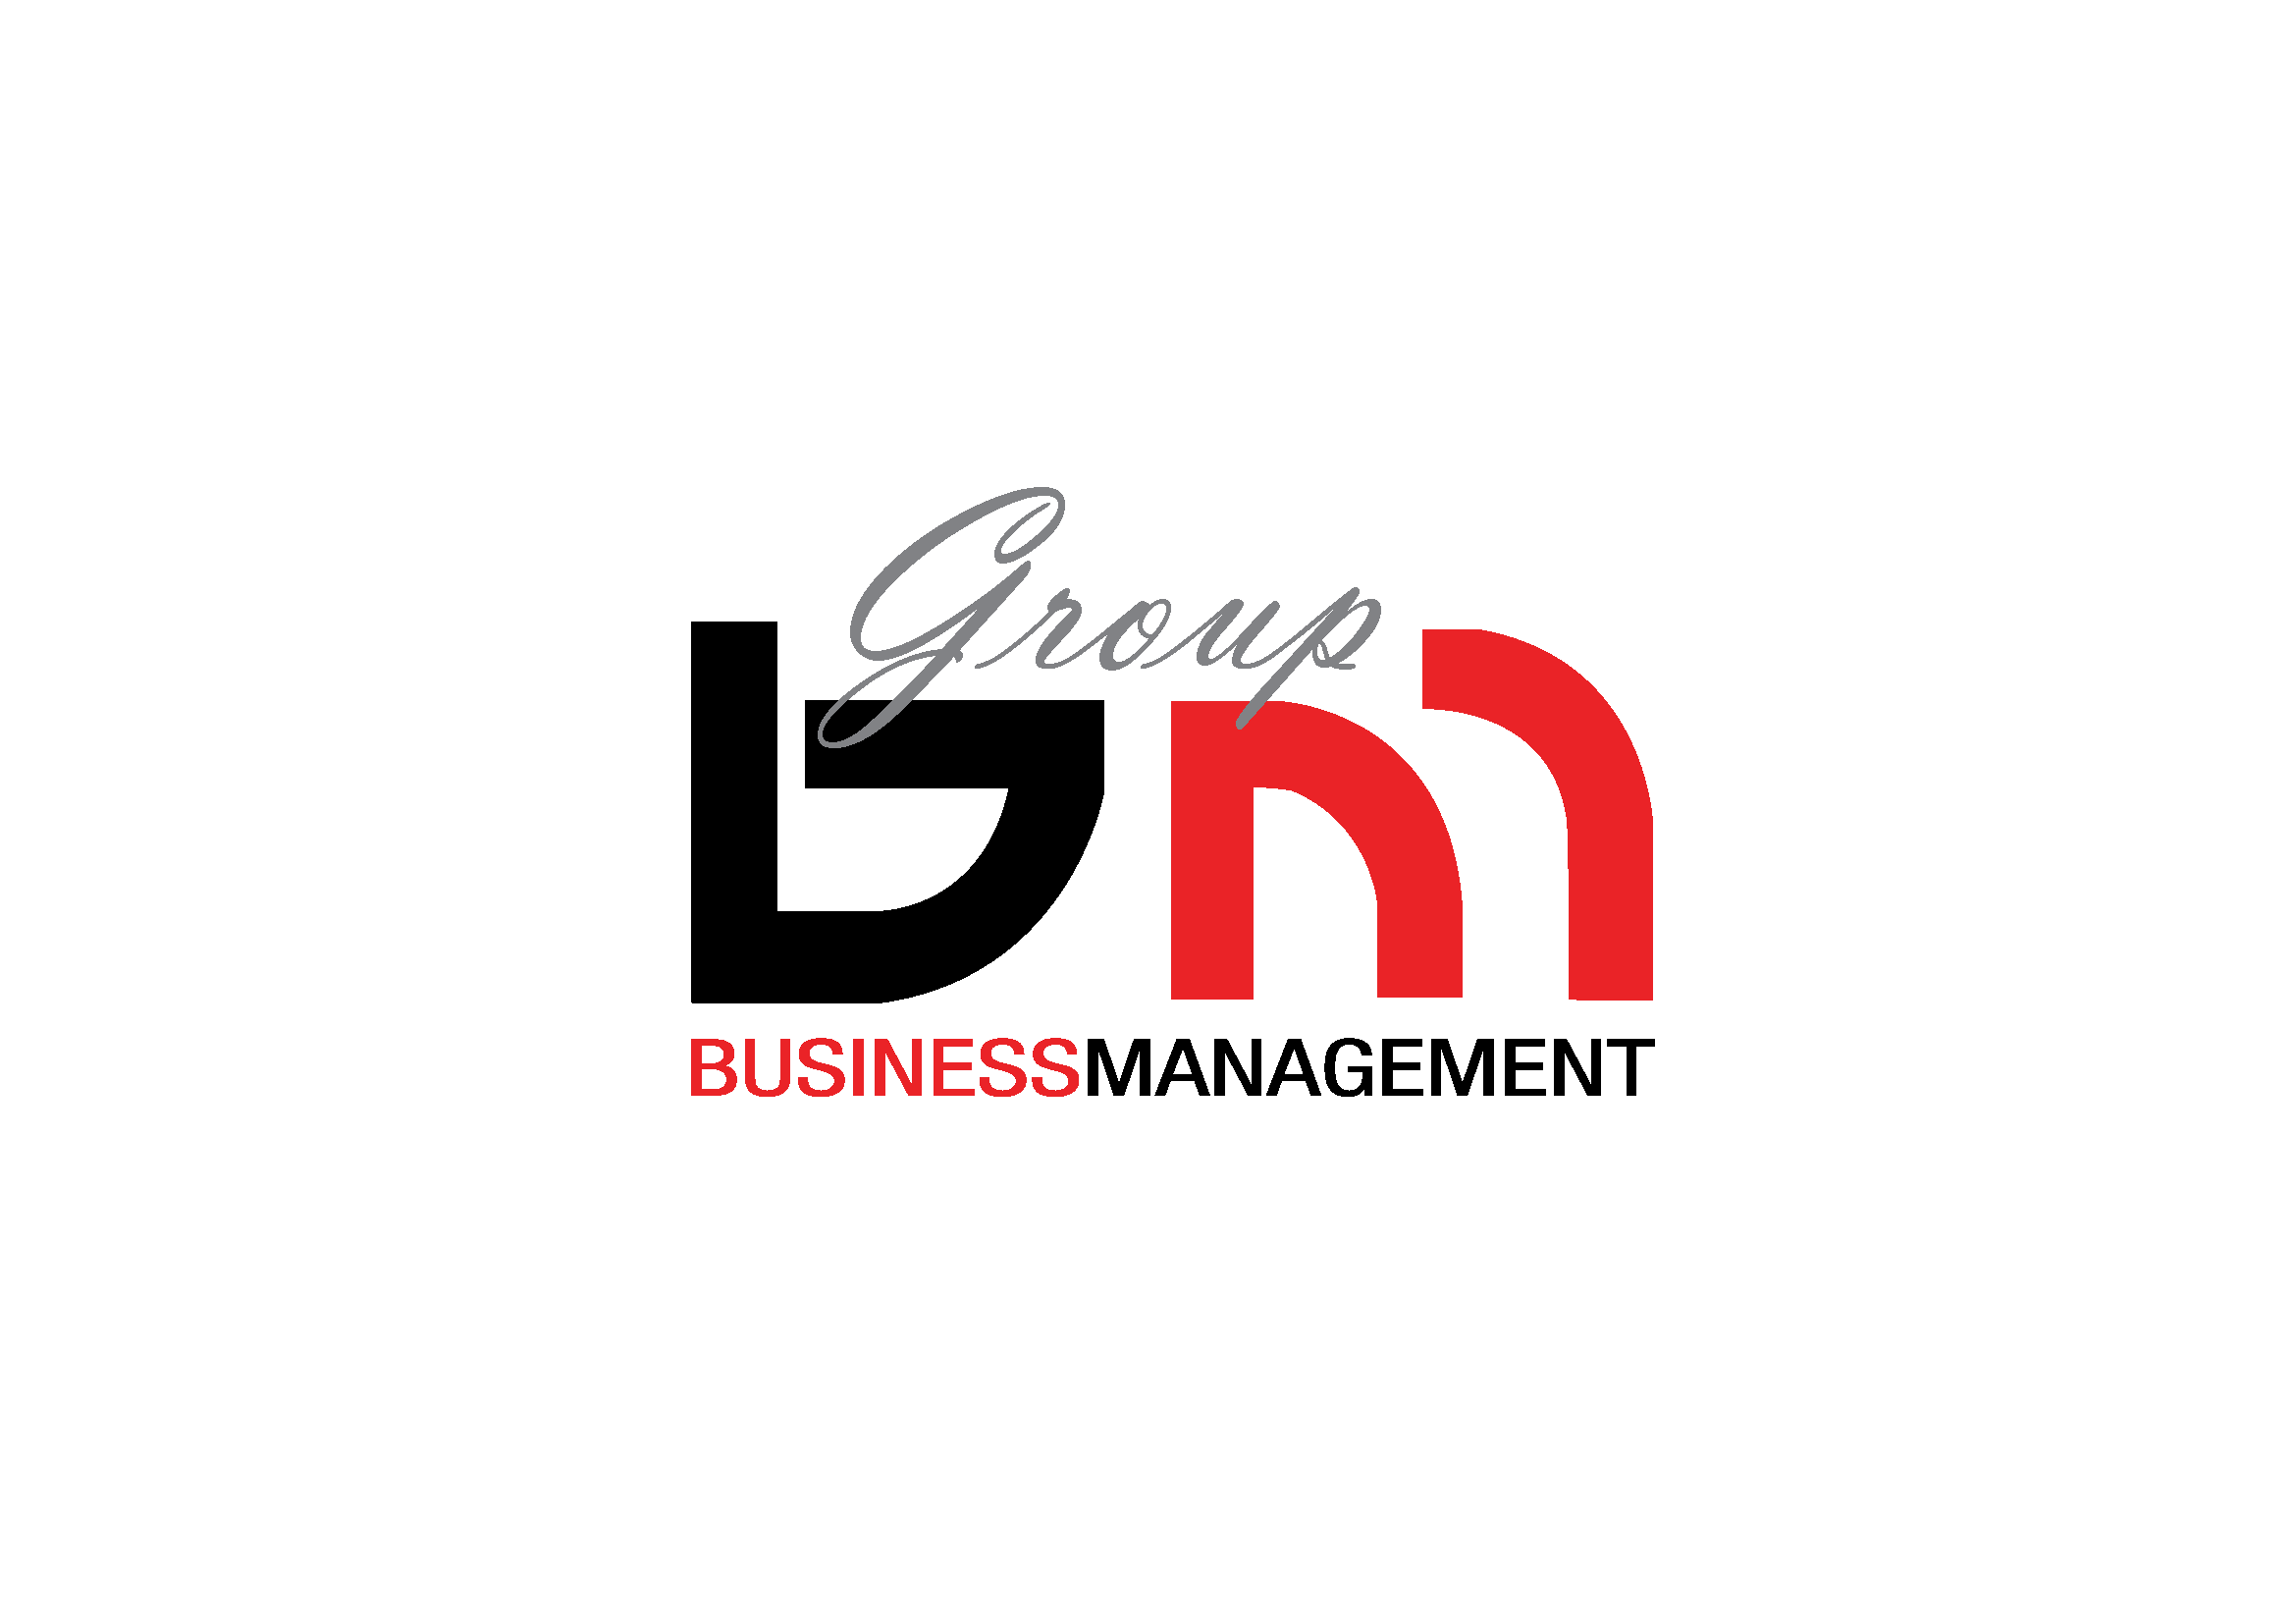 BUSINESS MANAGEMENT GROUP